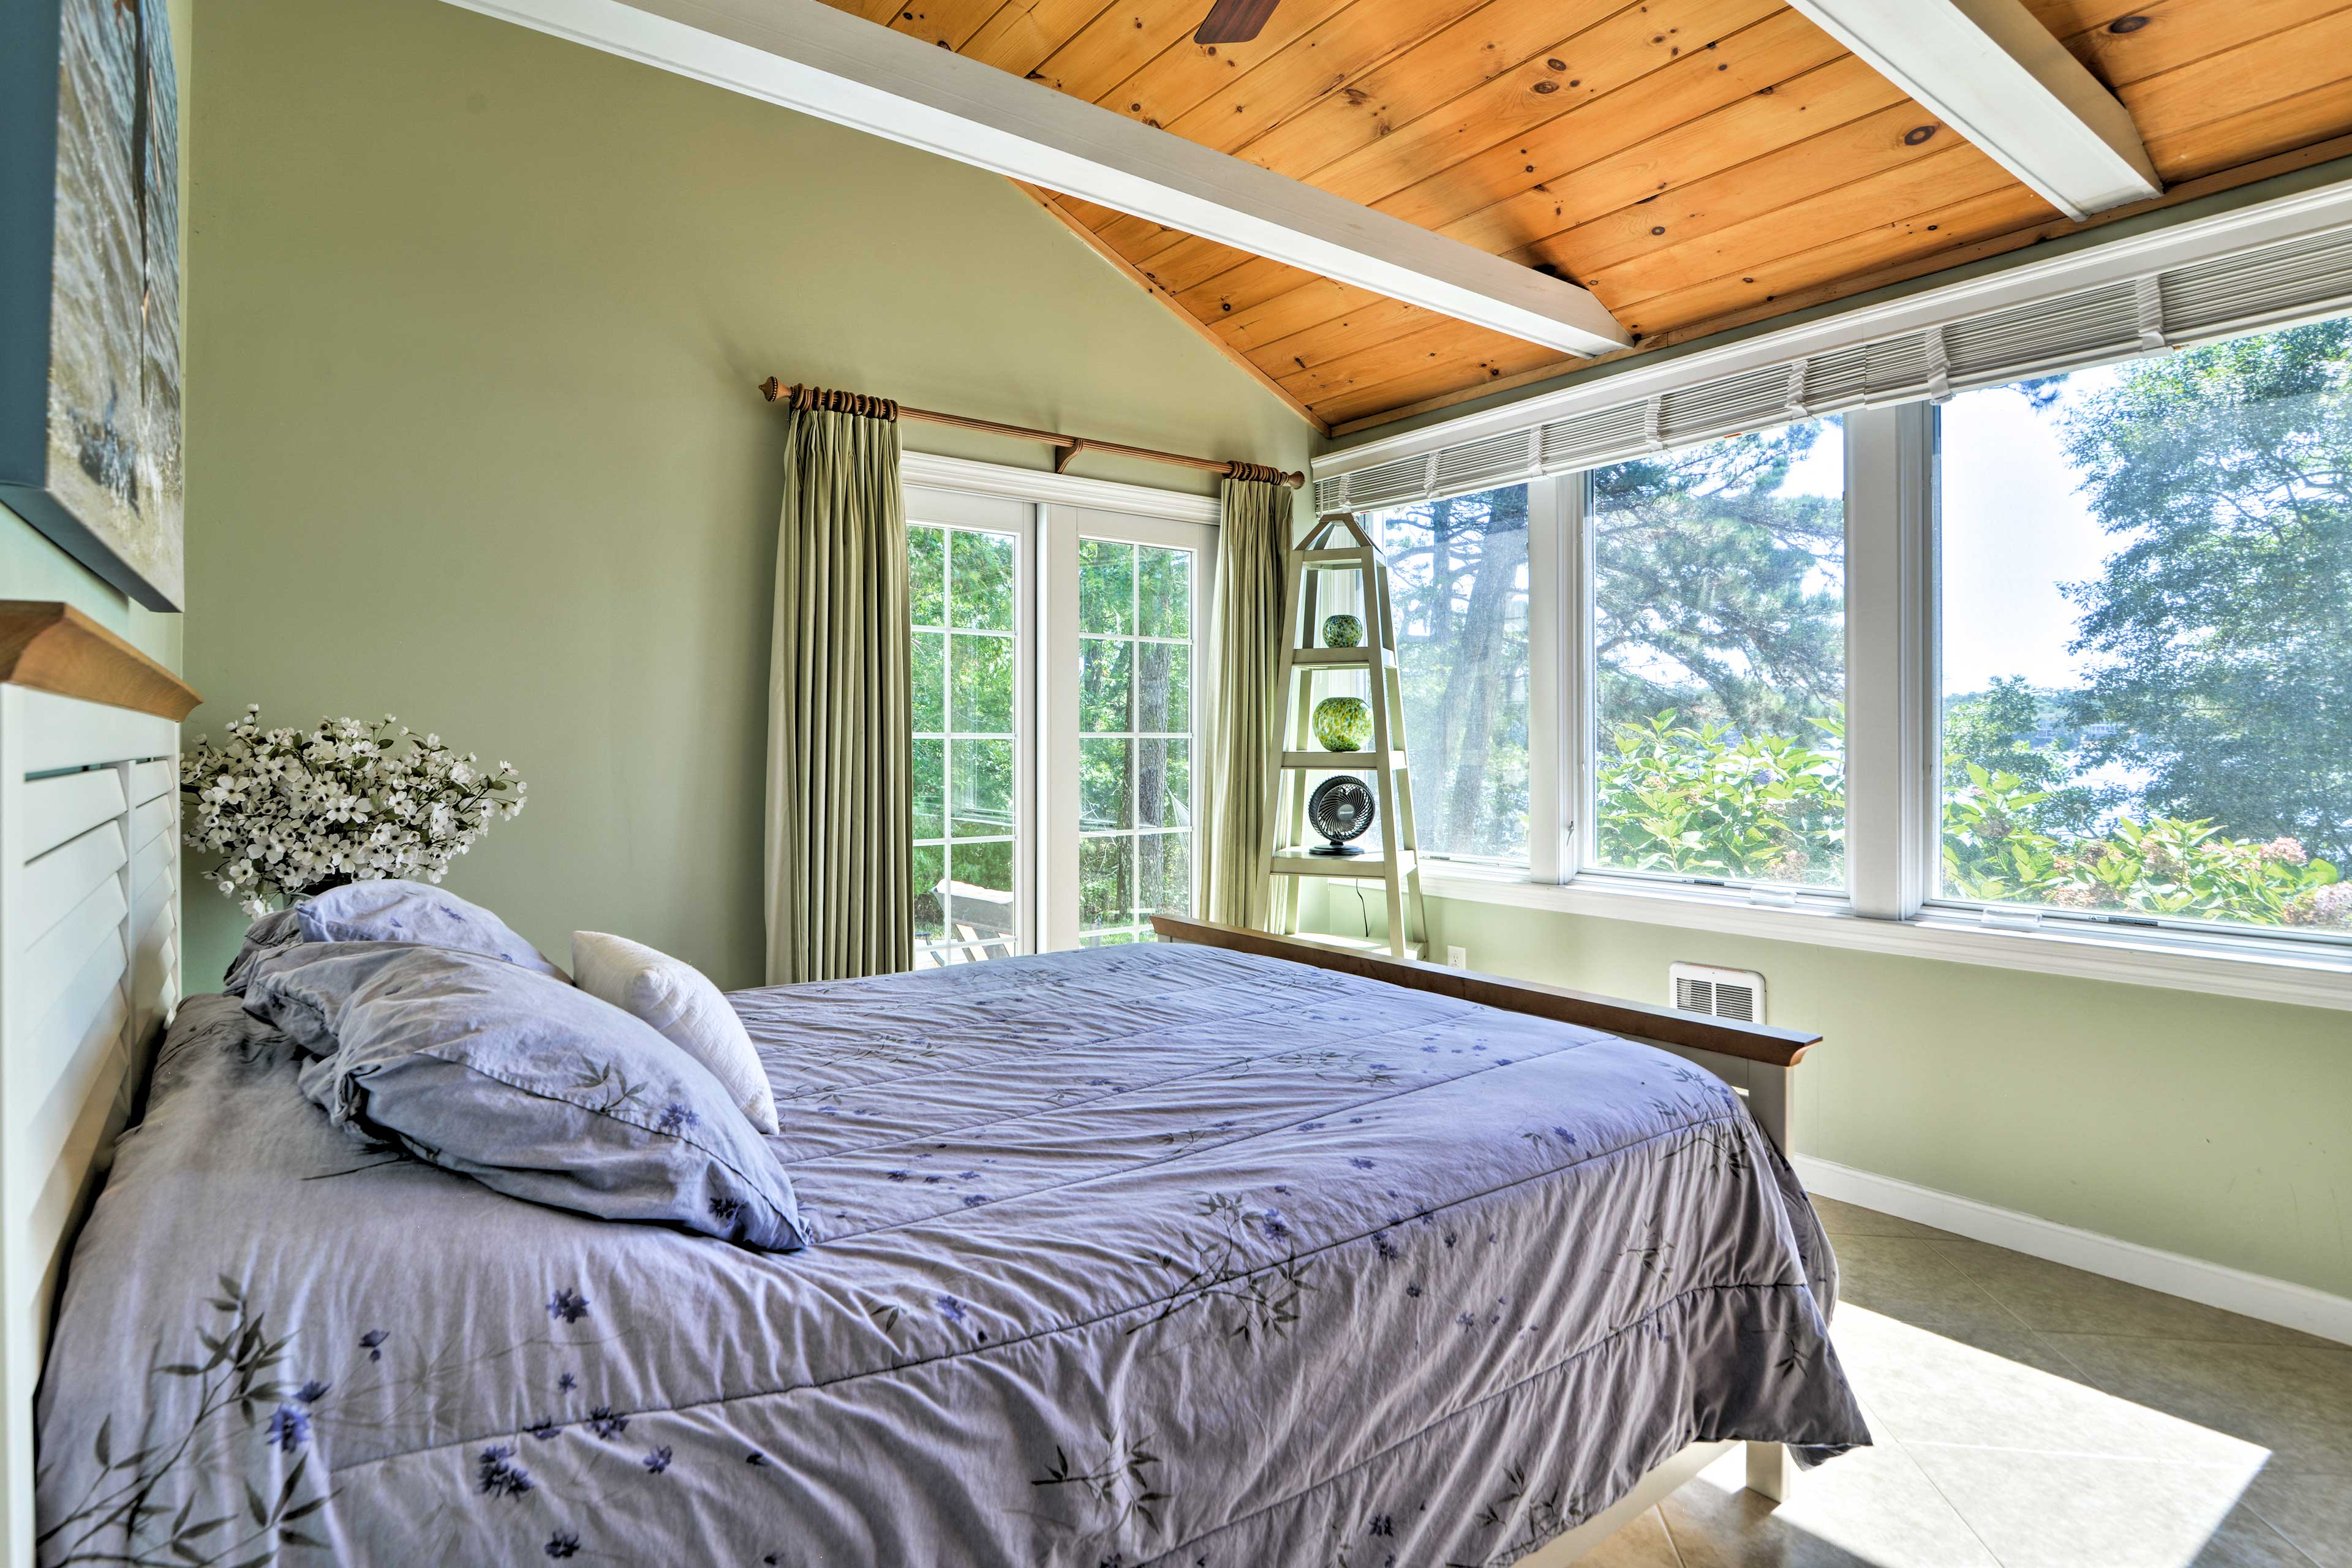 Slip into this cozy queen bed for a peaceful slumber.